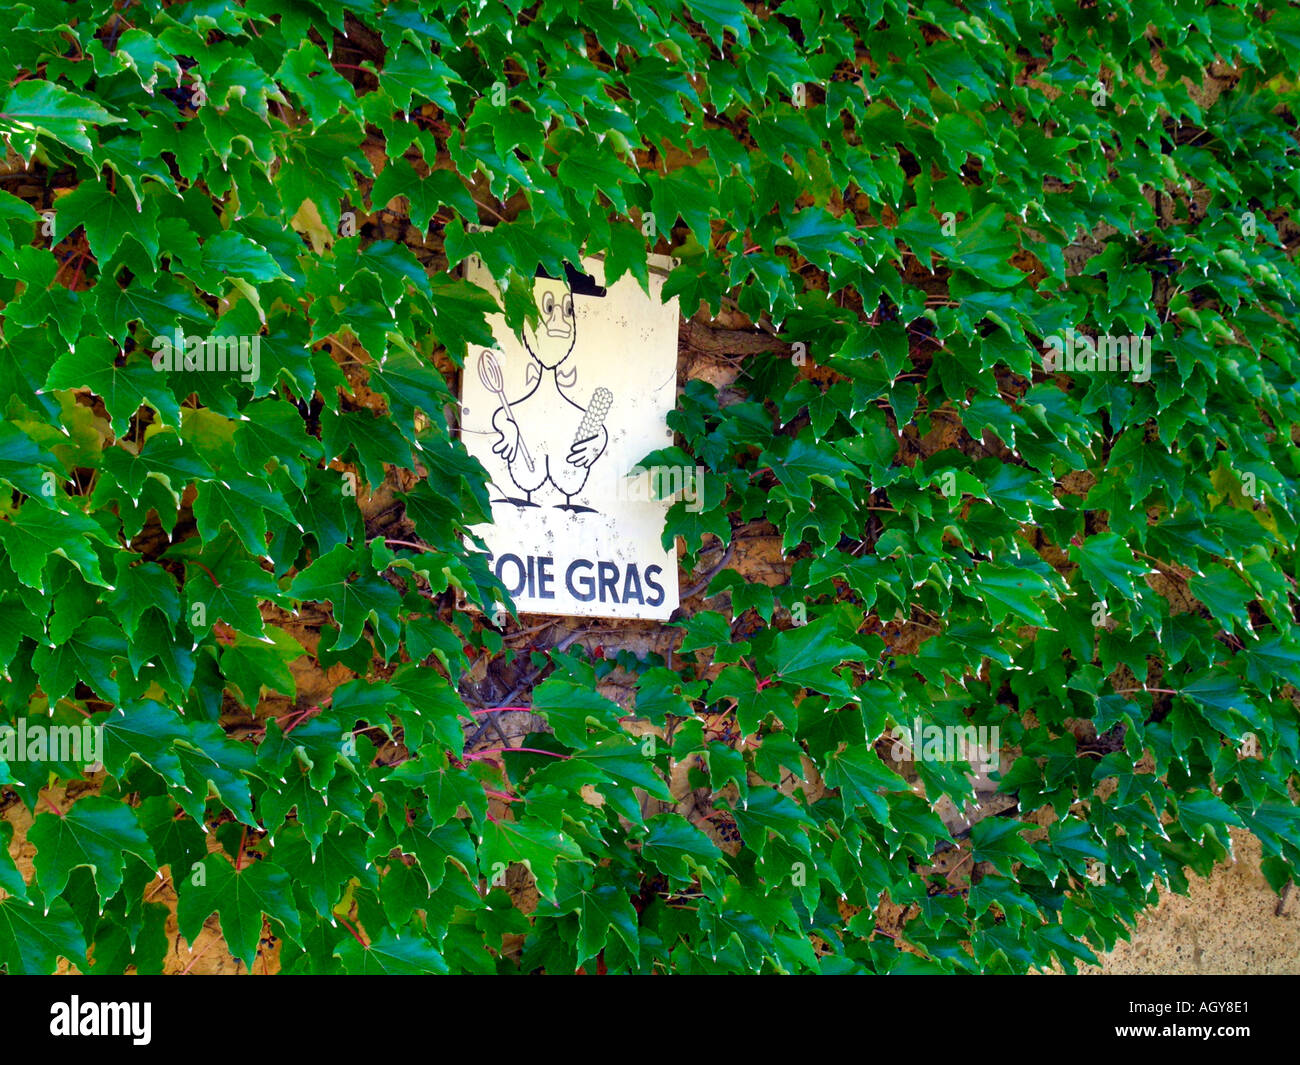 advertising for foie gras goose liver pasty on a house wall in Gascogne France - Stock Image